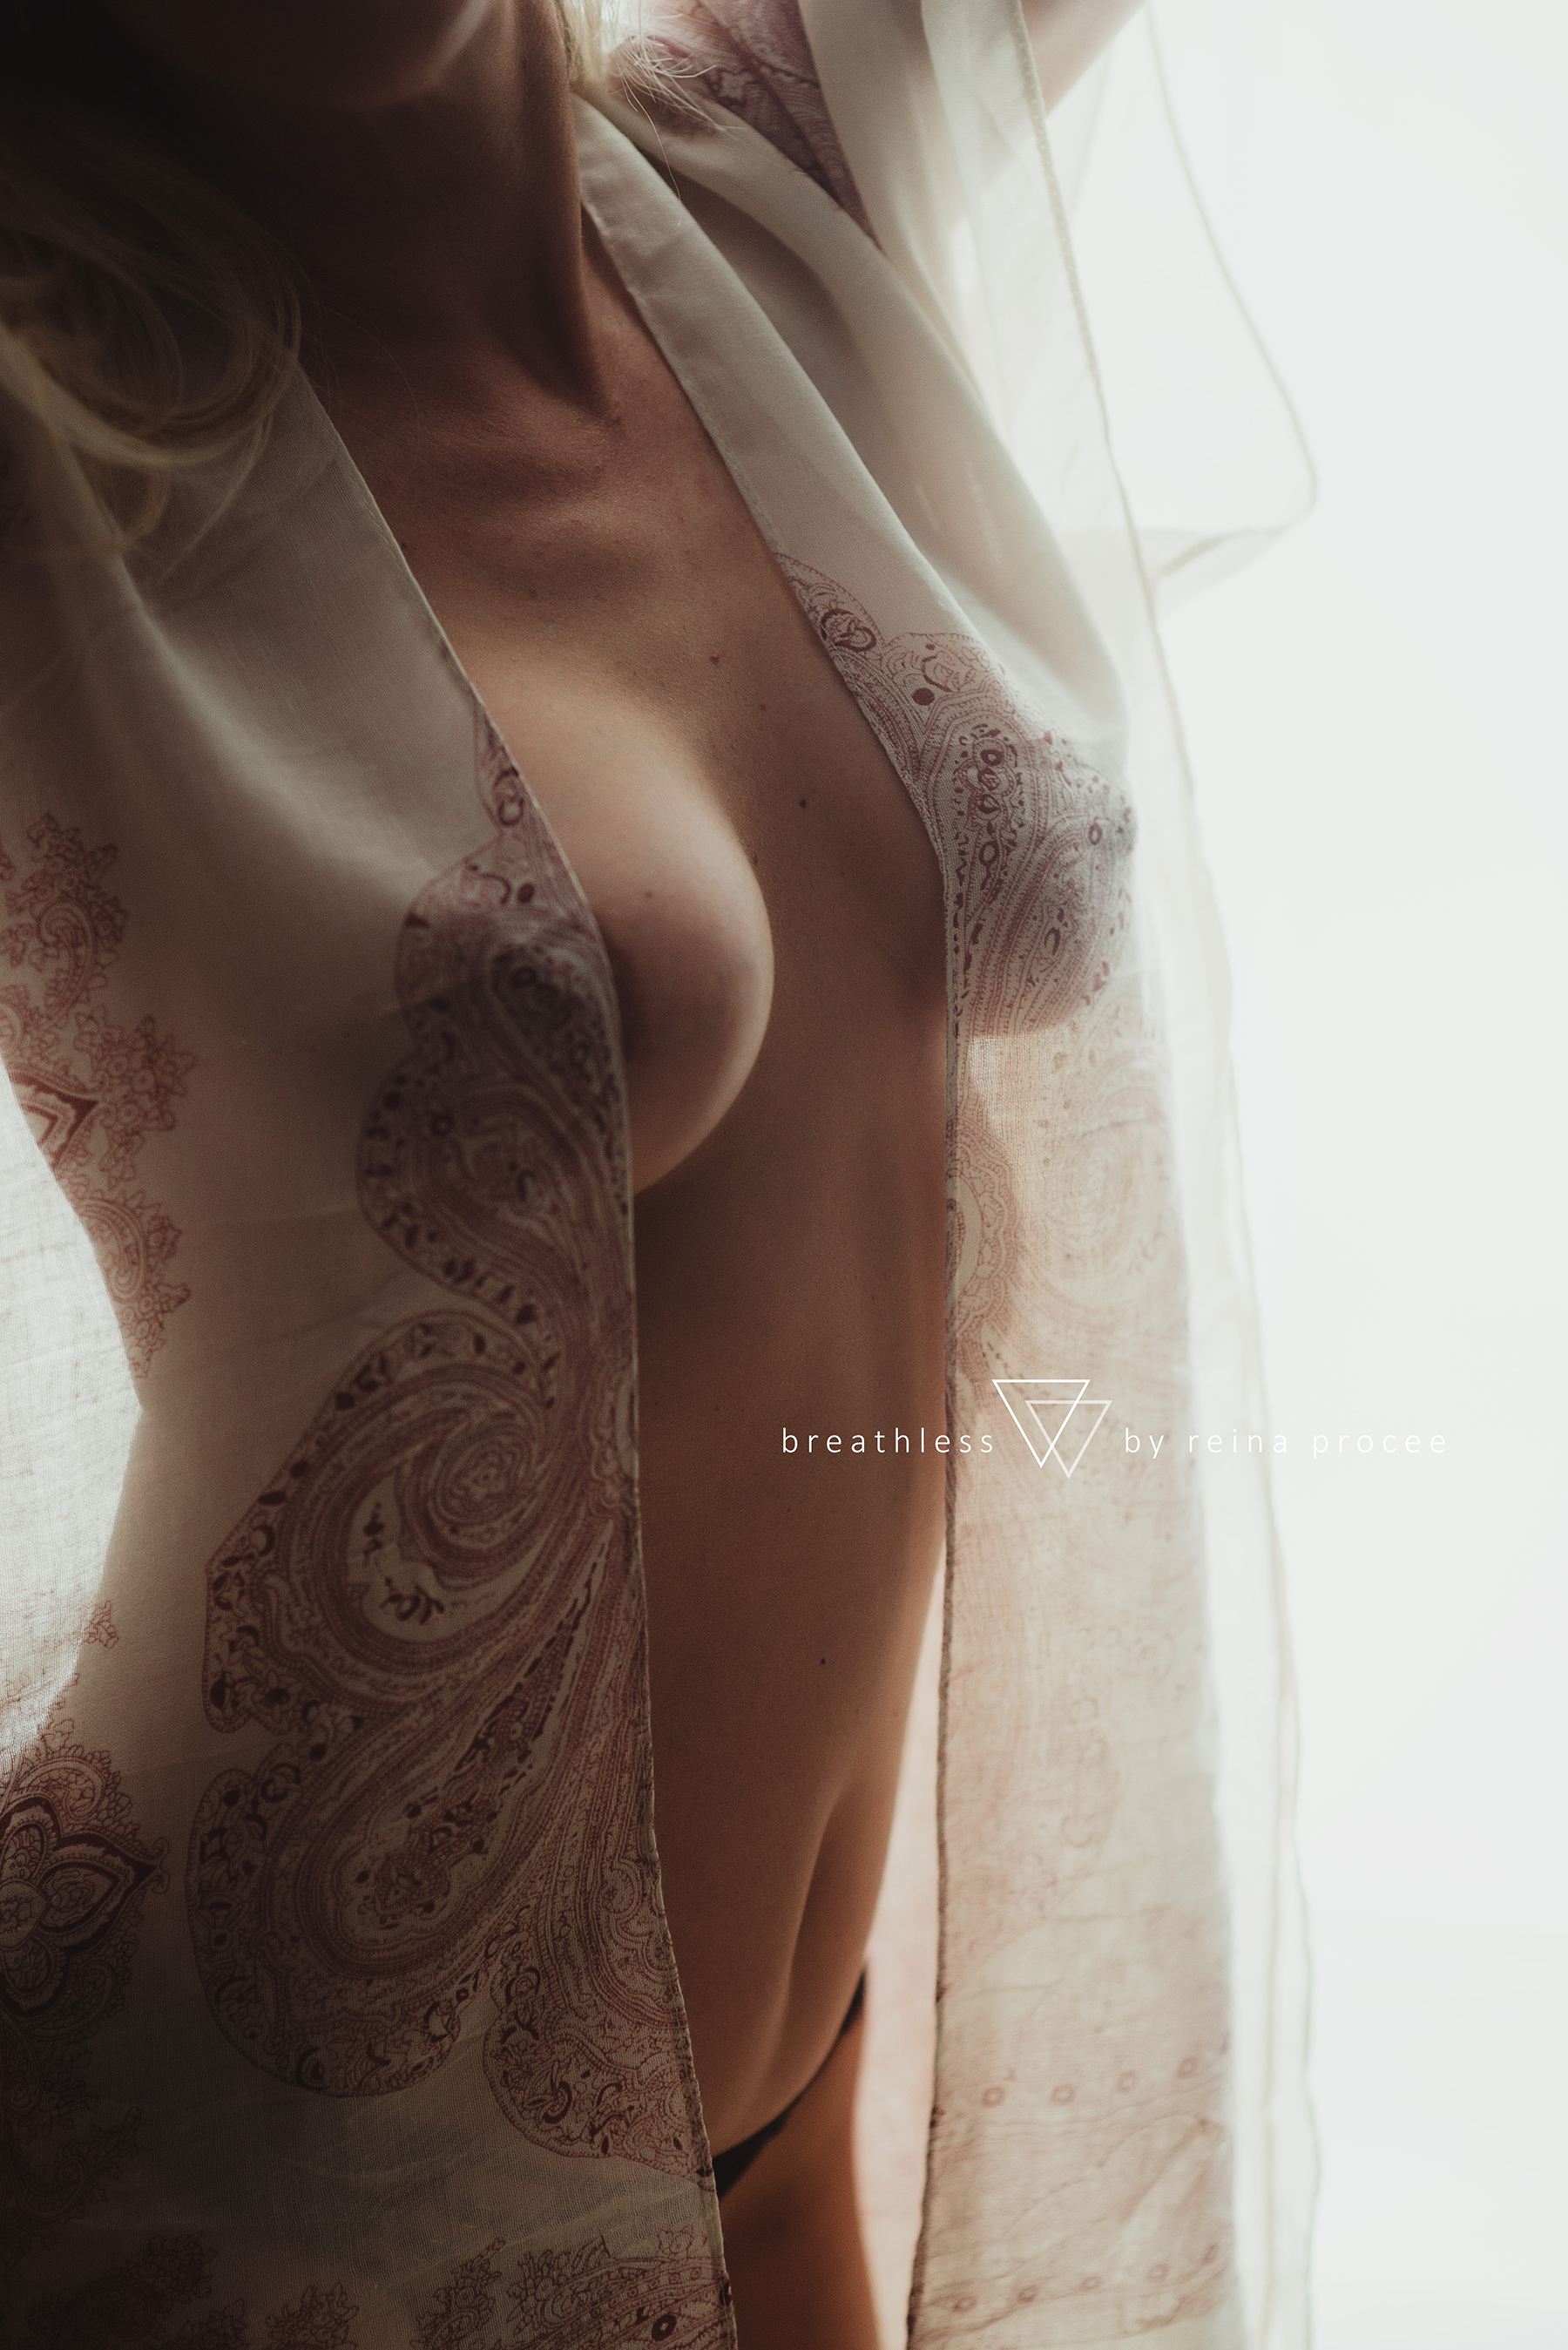 montreal-boudoir-beauty-exotic-empower-women-ladies-comfort-progress-photography-photographer-5.png